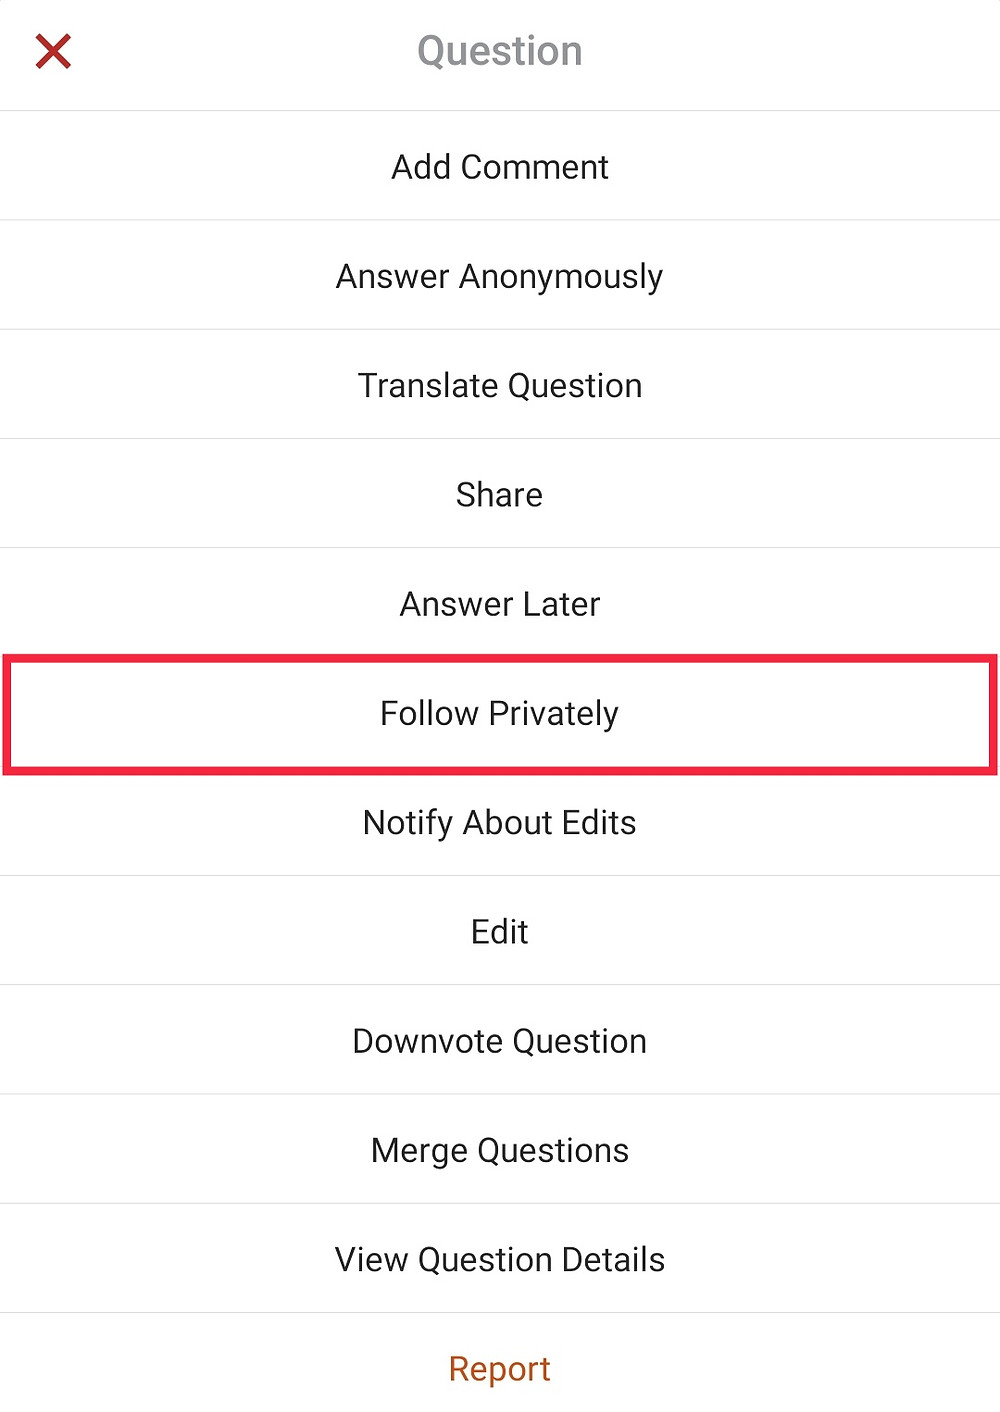 Quora Follow Privately